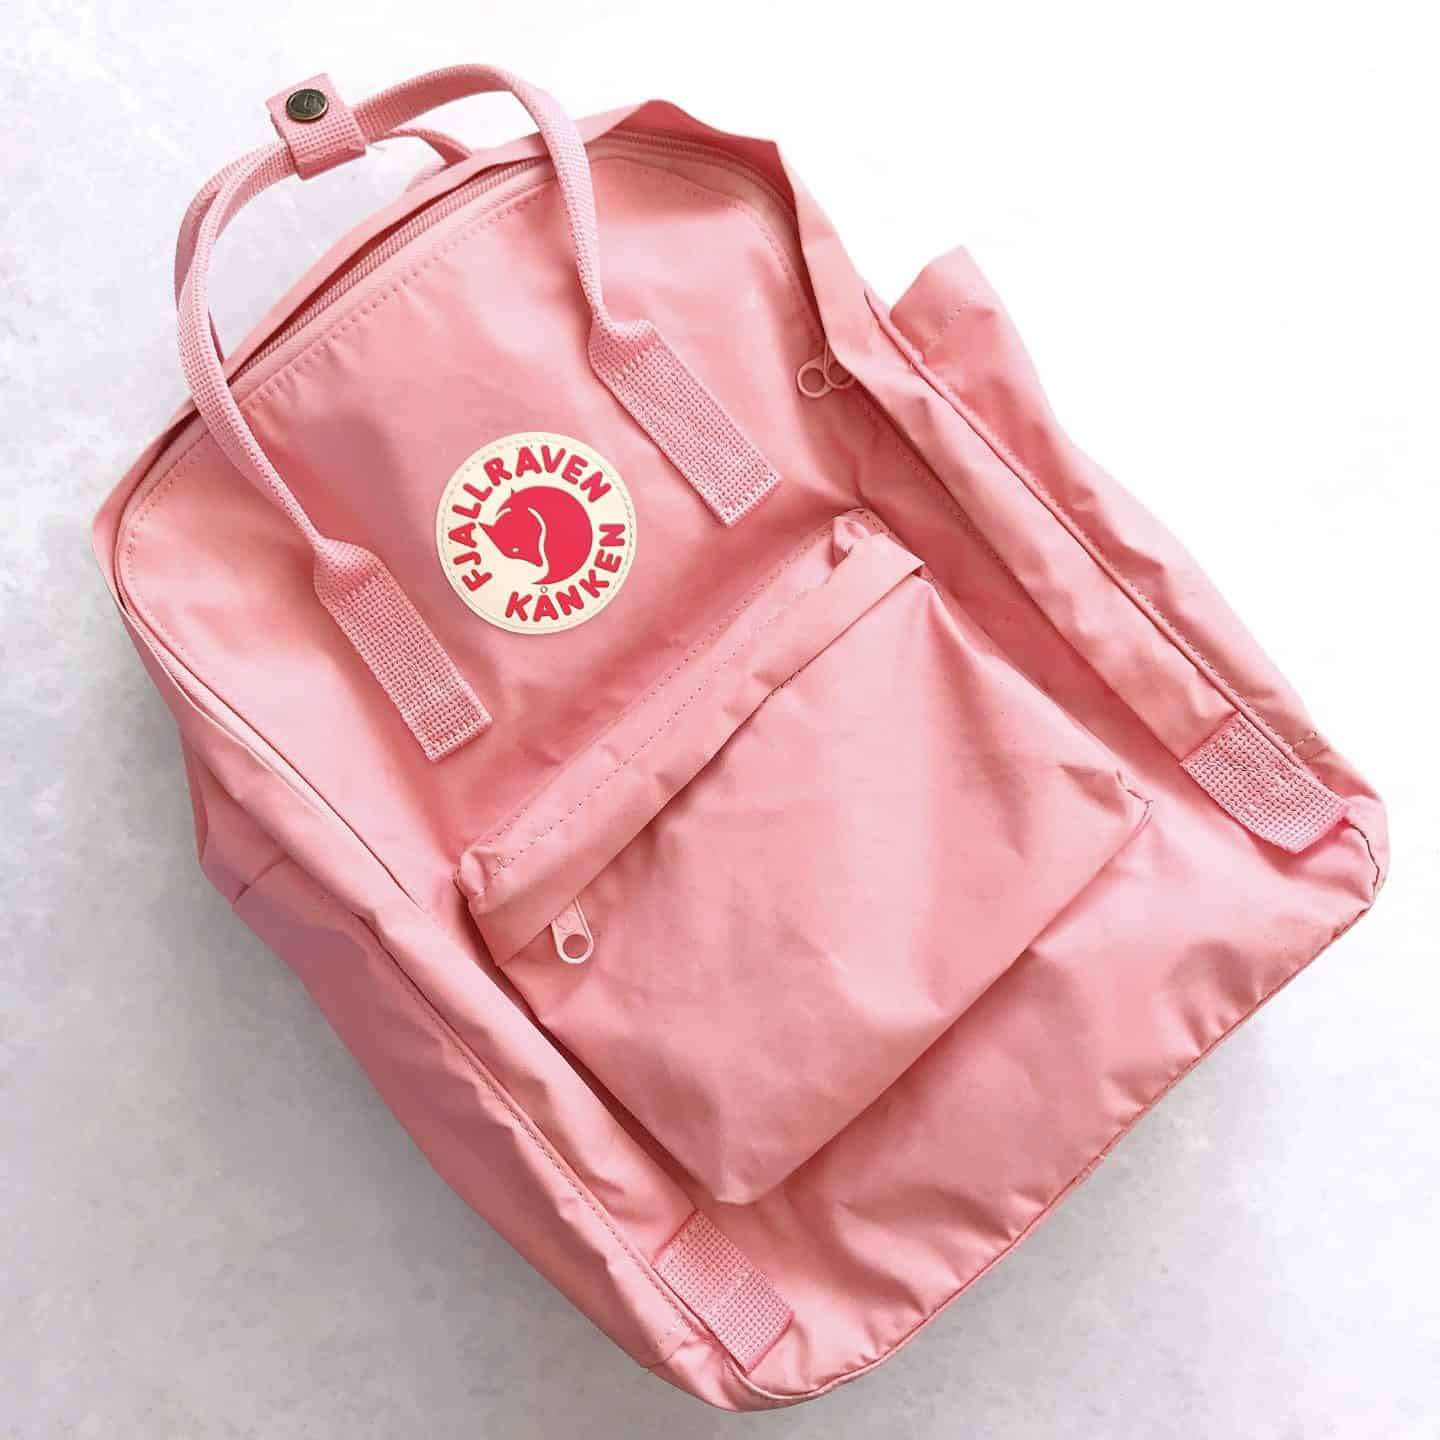 A Fjallraven backpack to Help You Travel Light